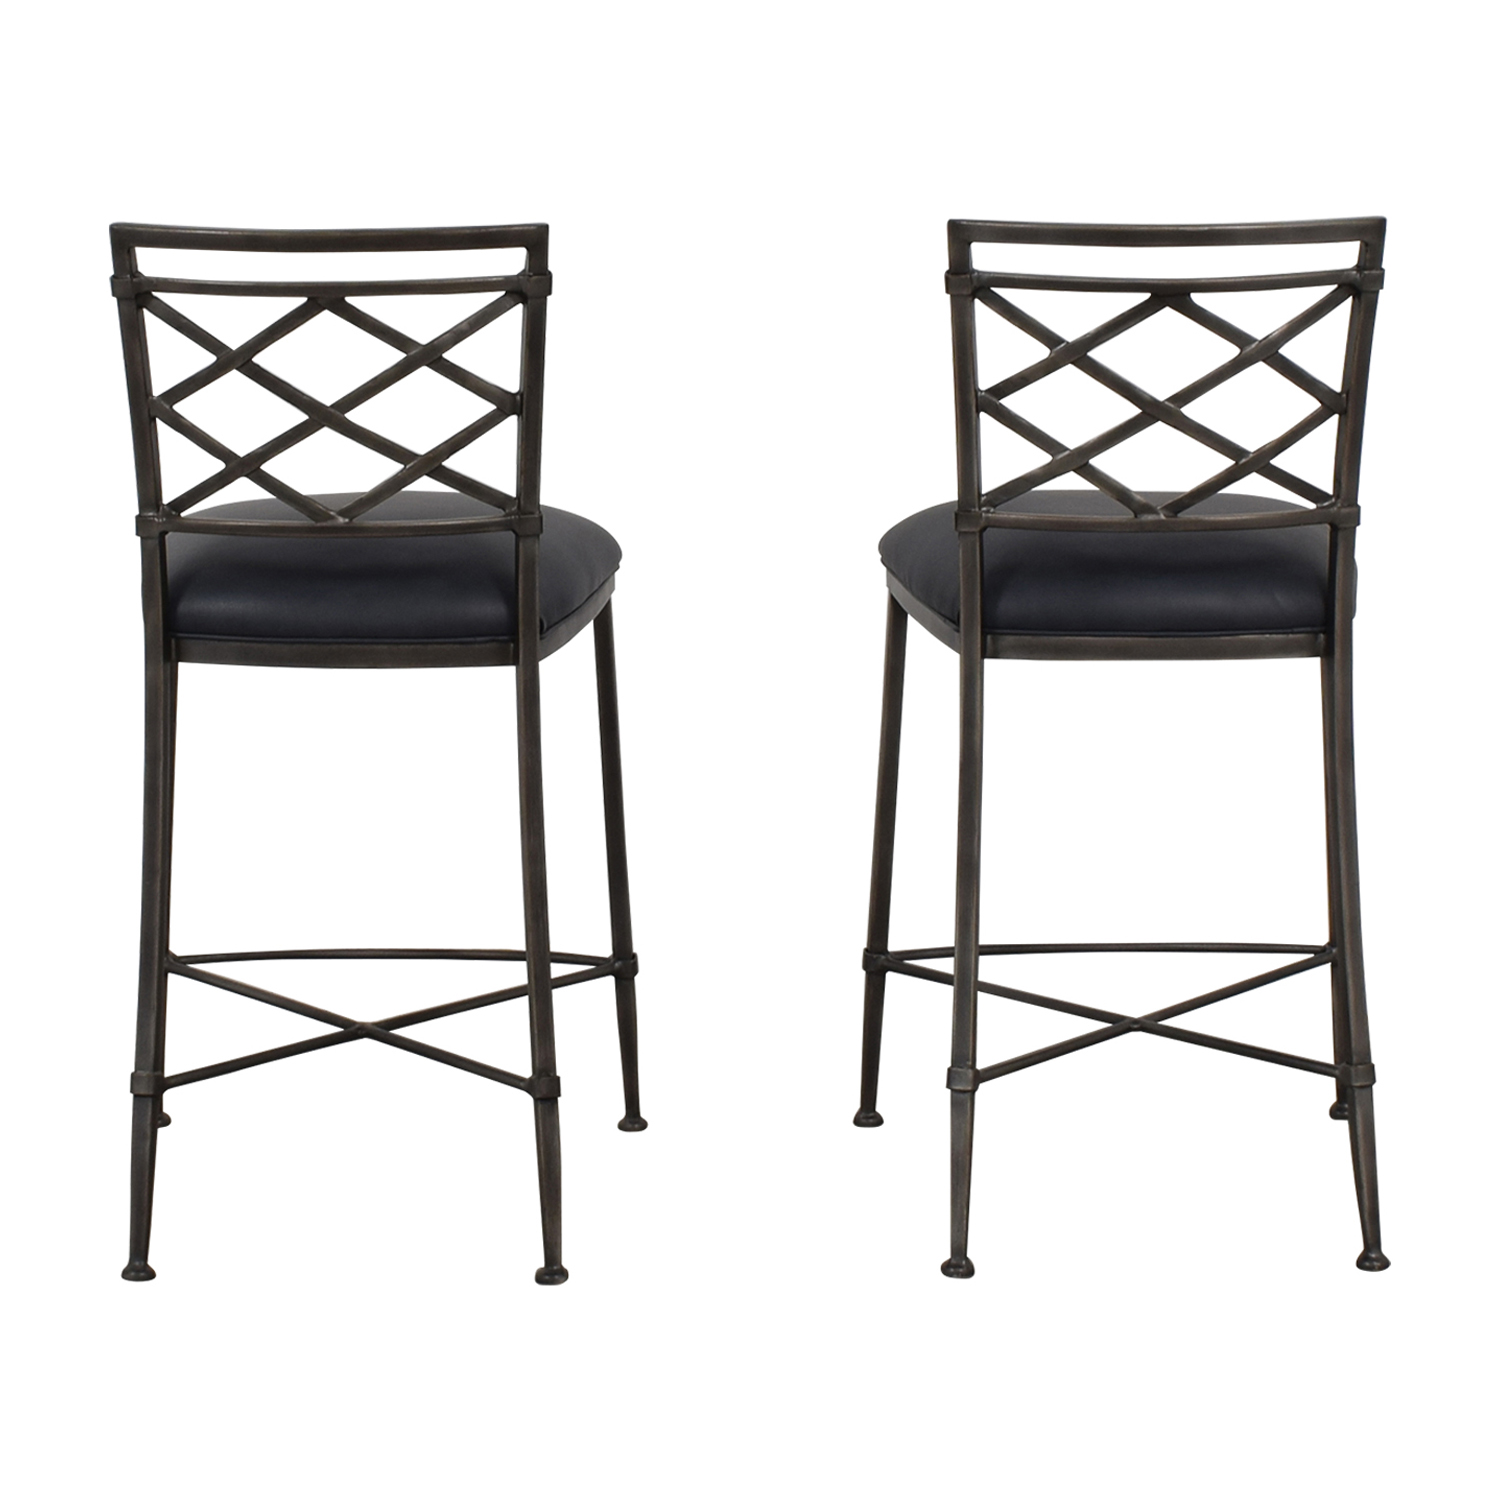 Ethan Allen Grey Bistro Chairs / Dining Chairs